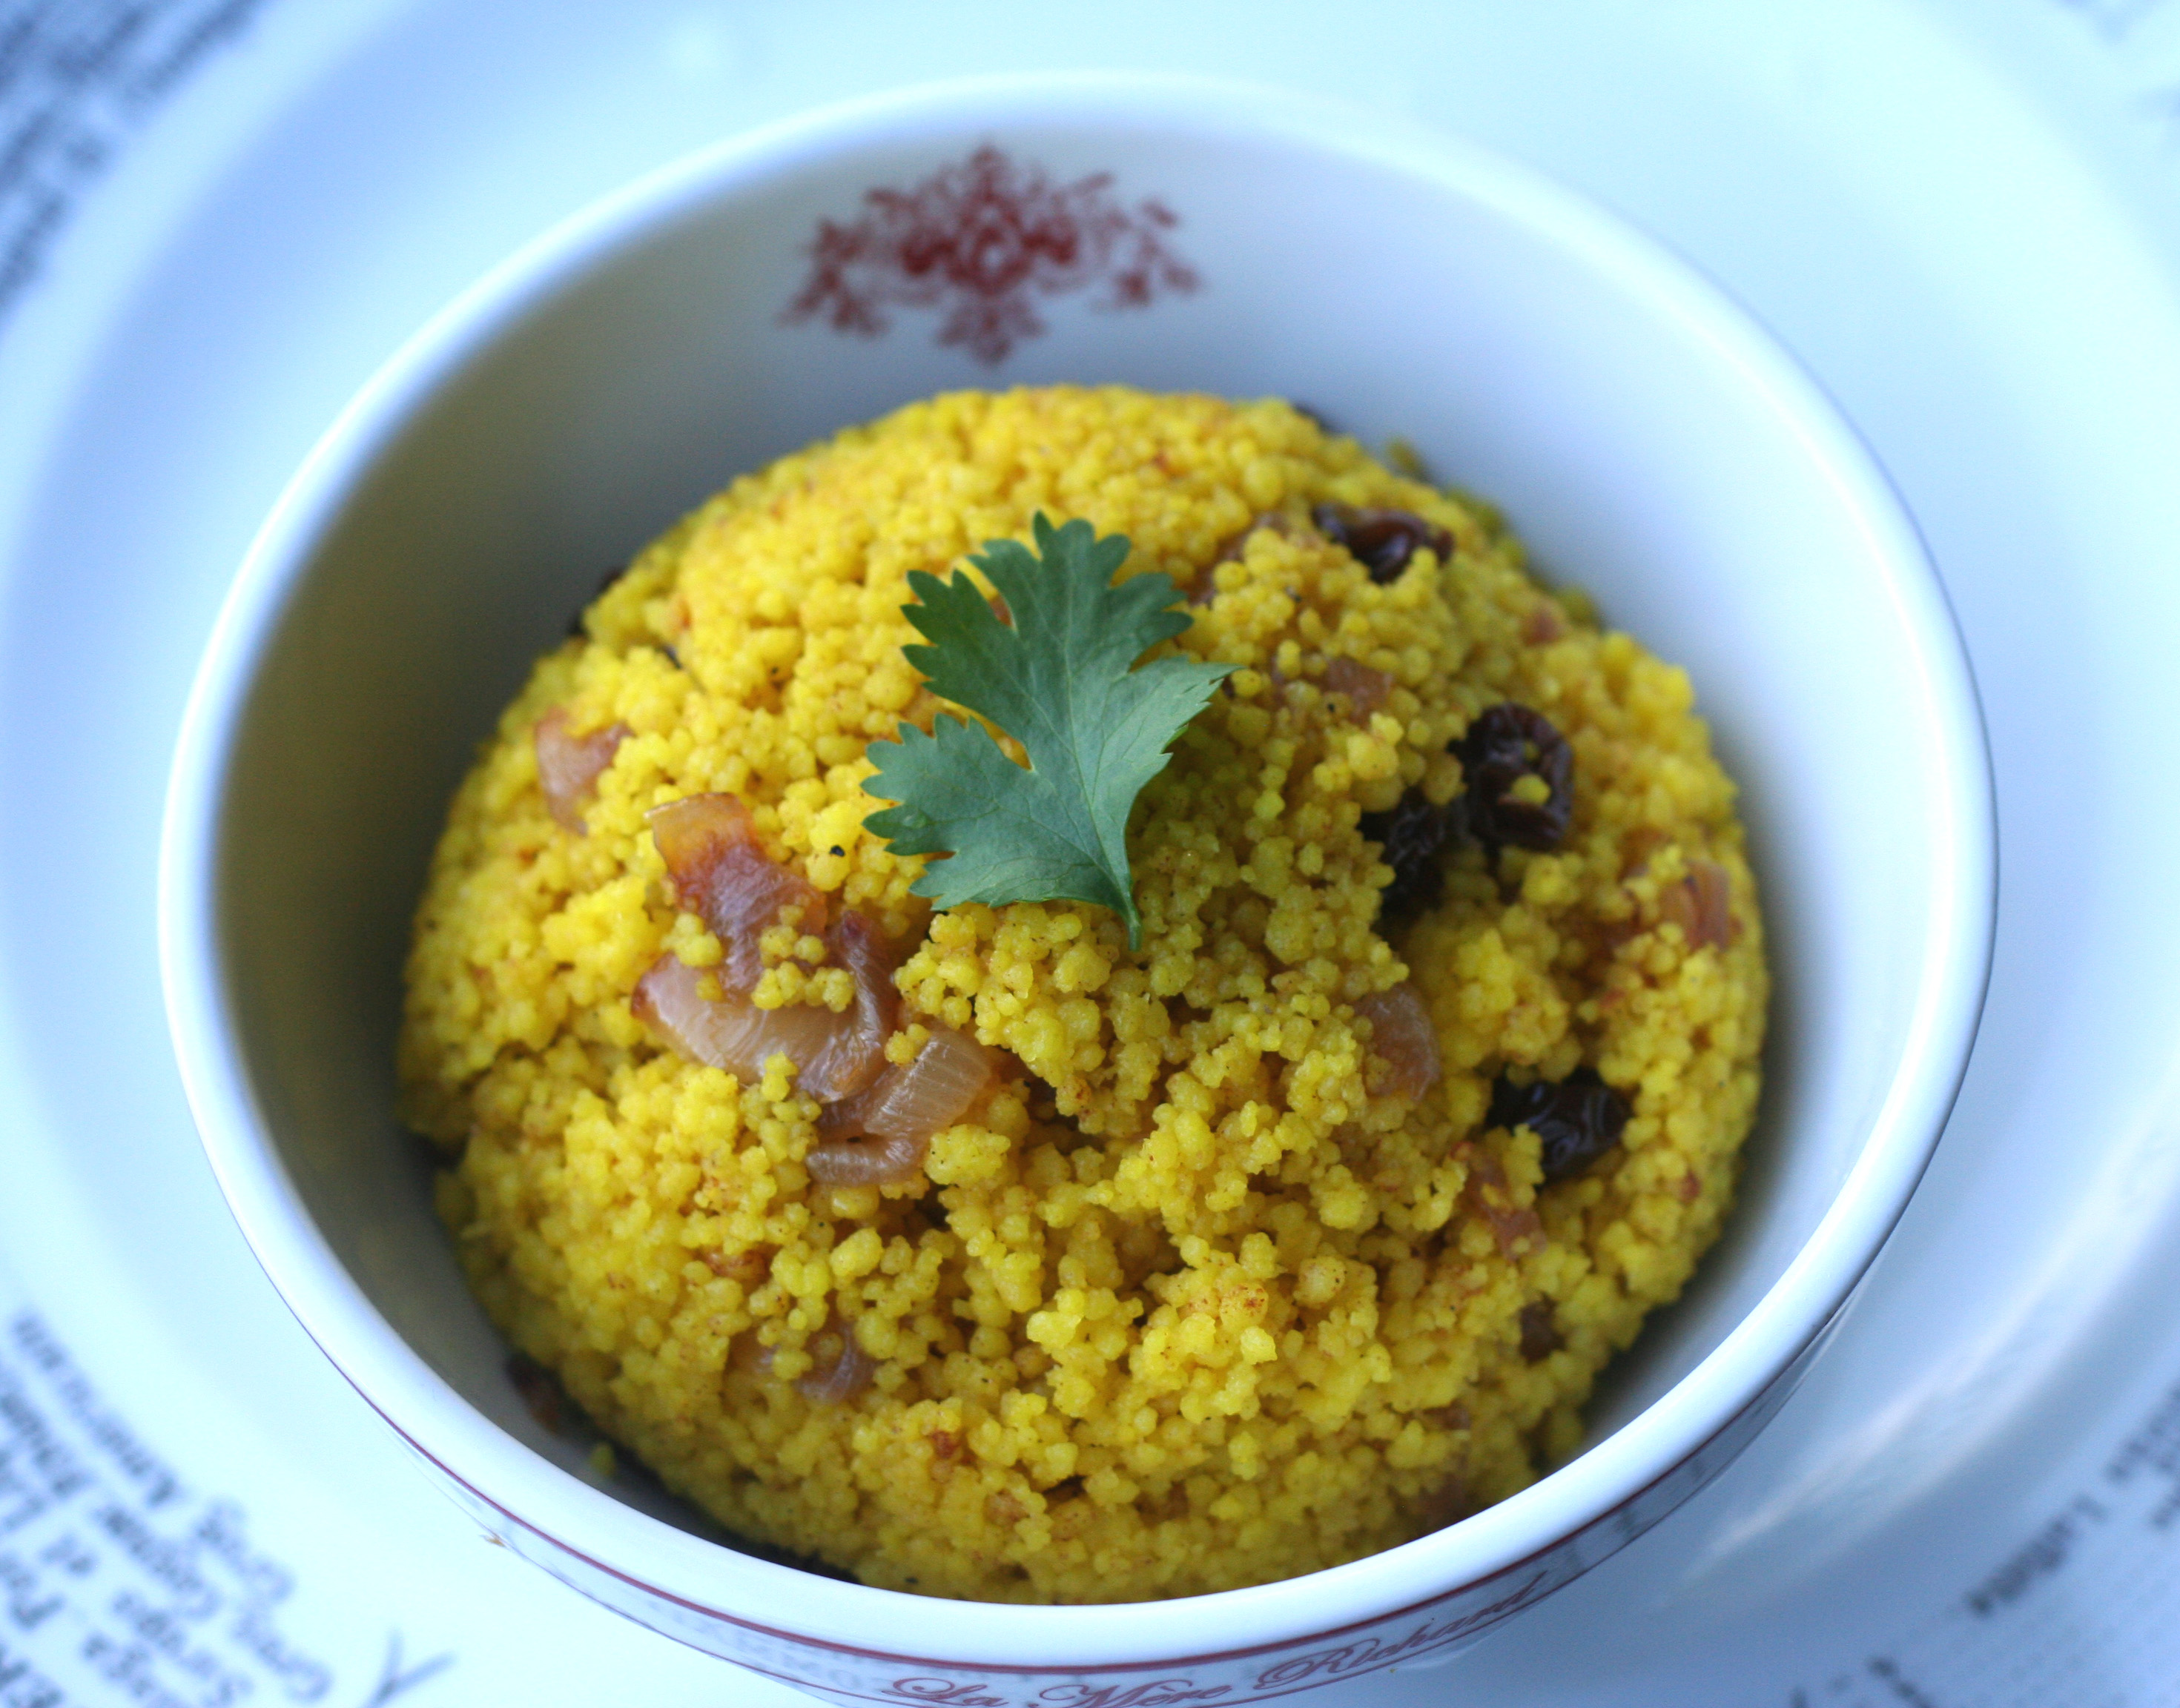 Couscous T'Faya: saffron couscous with caramelized onions